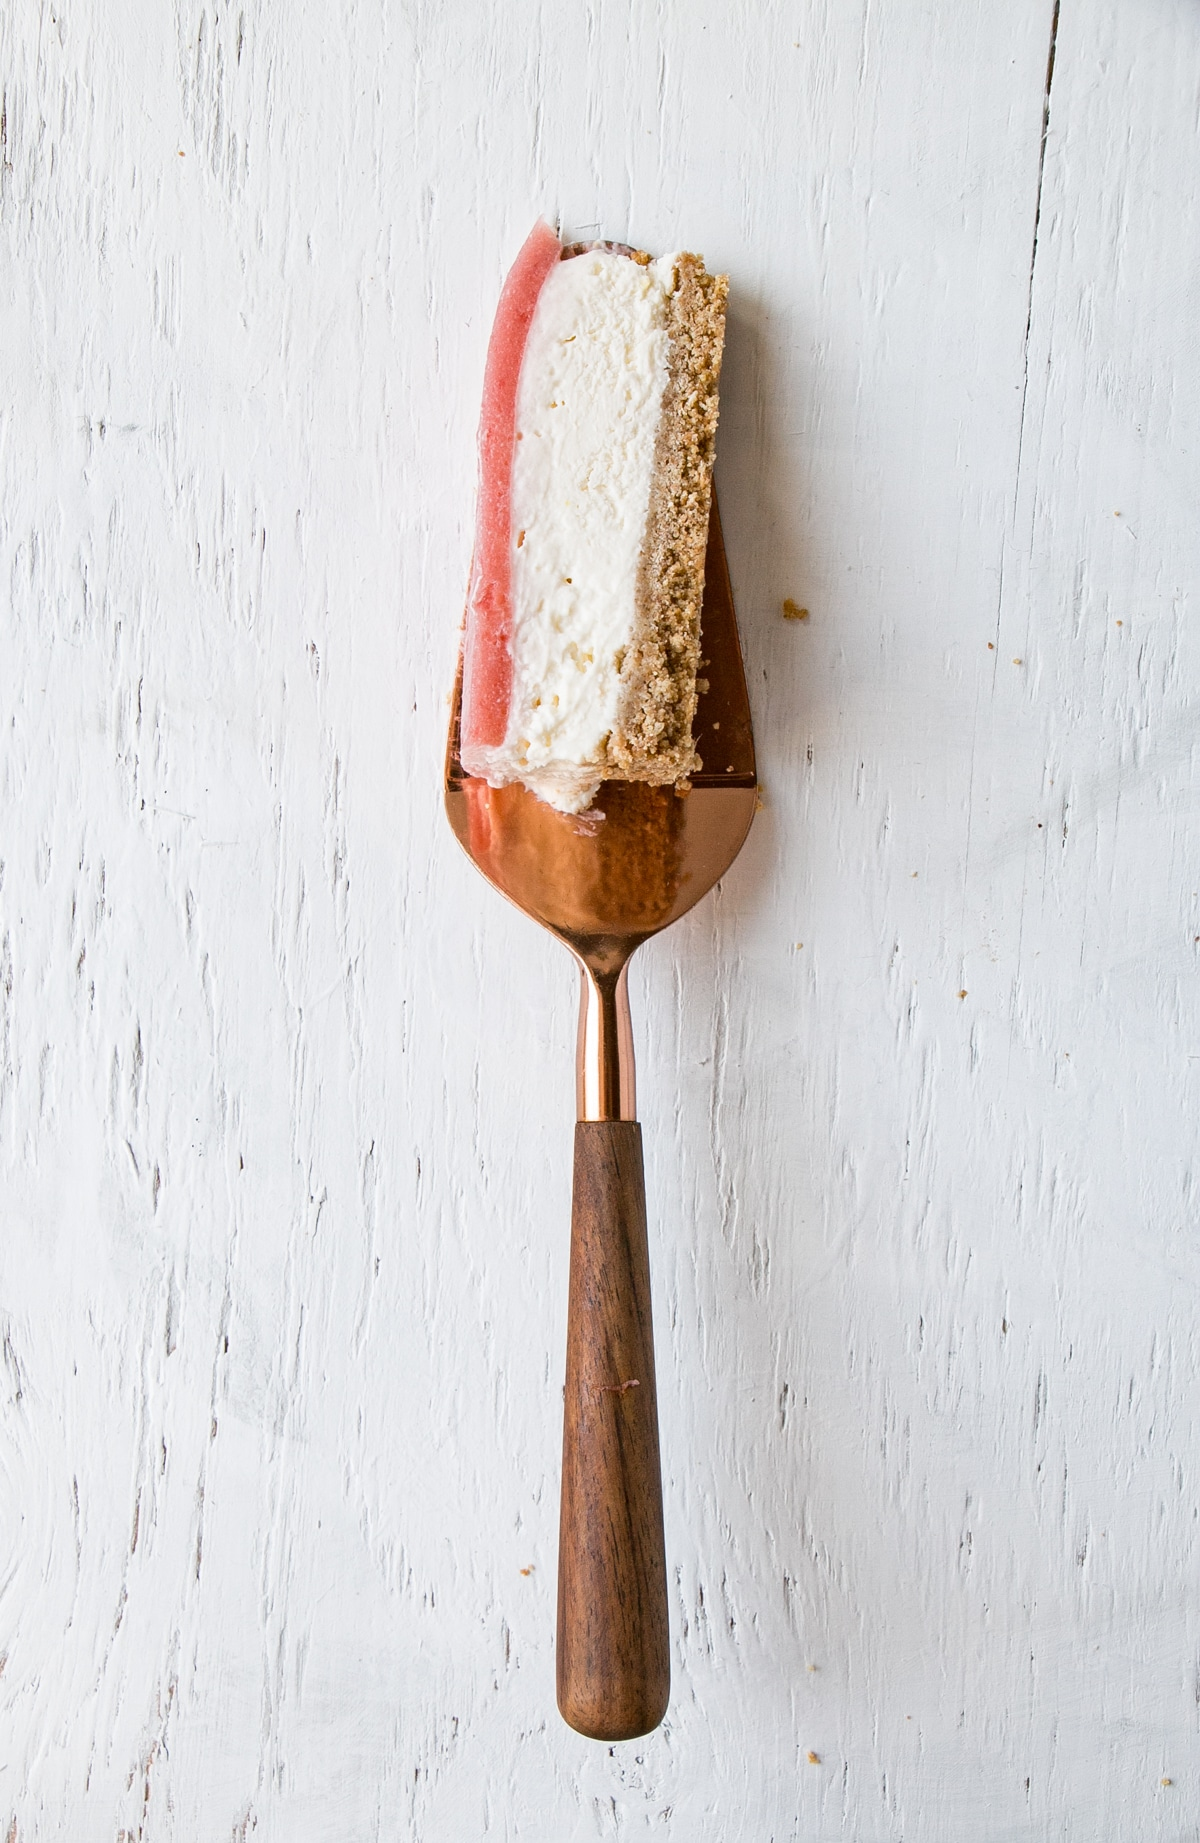 Cut pice on a plate of a No Bake Rhubarb Cheesecake